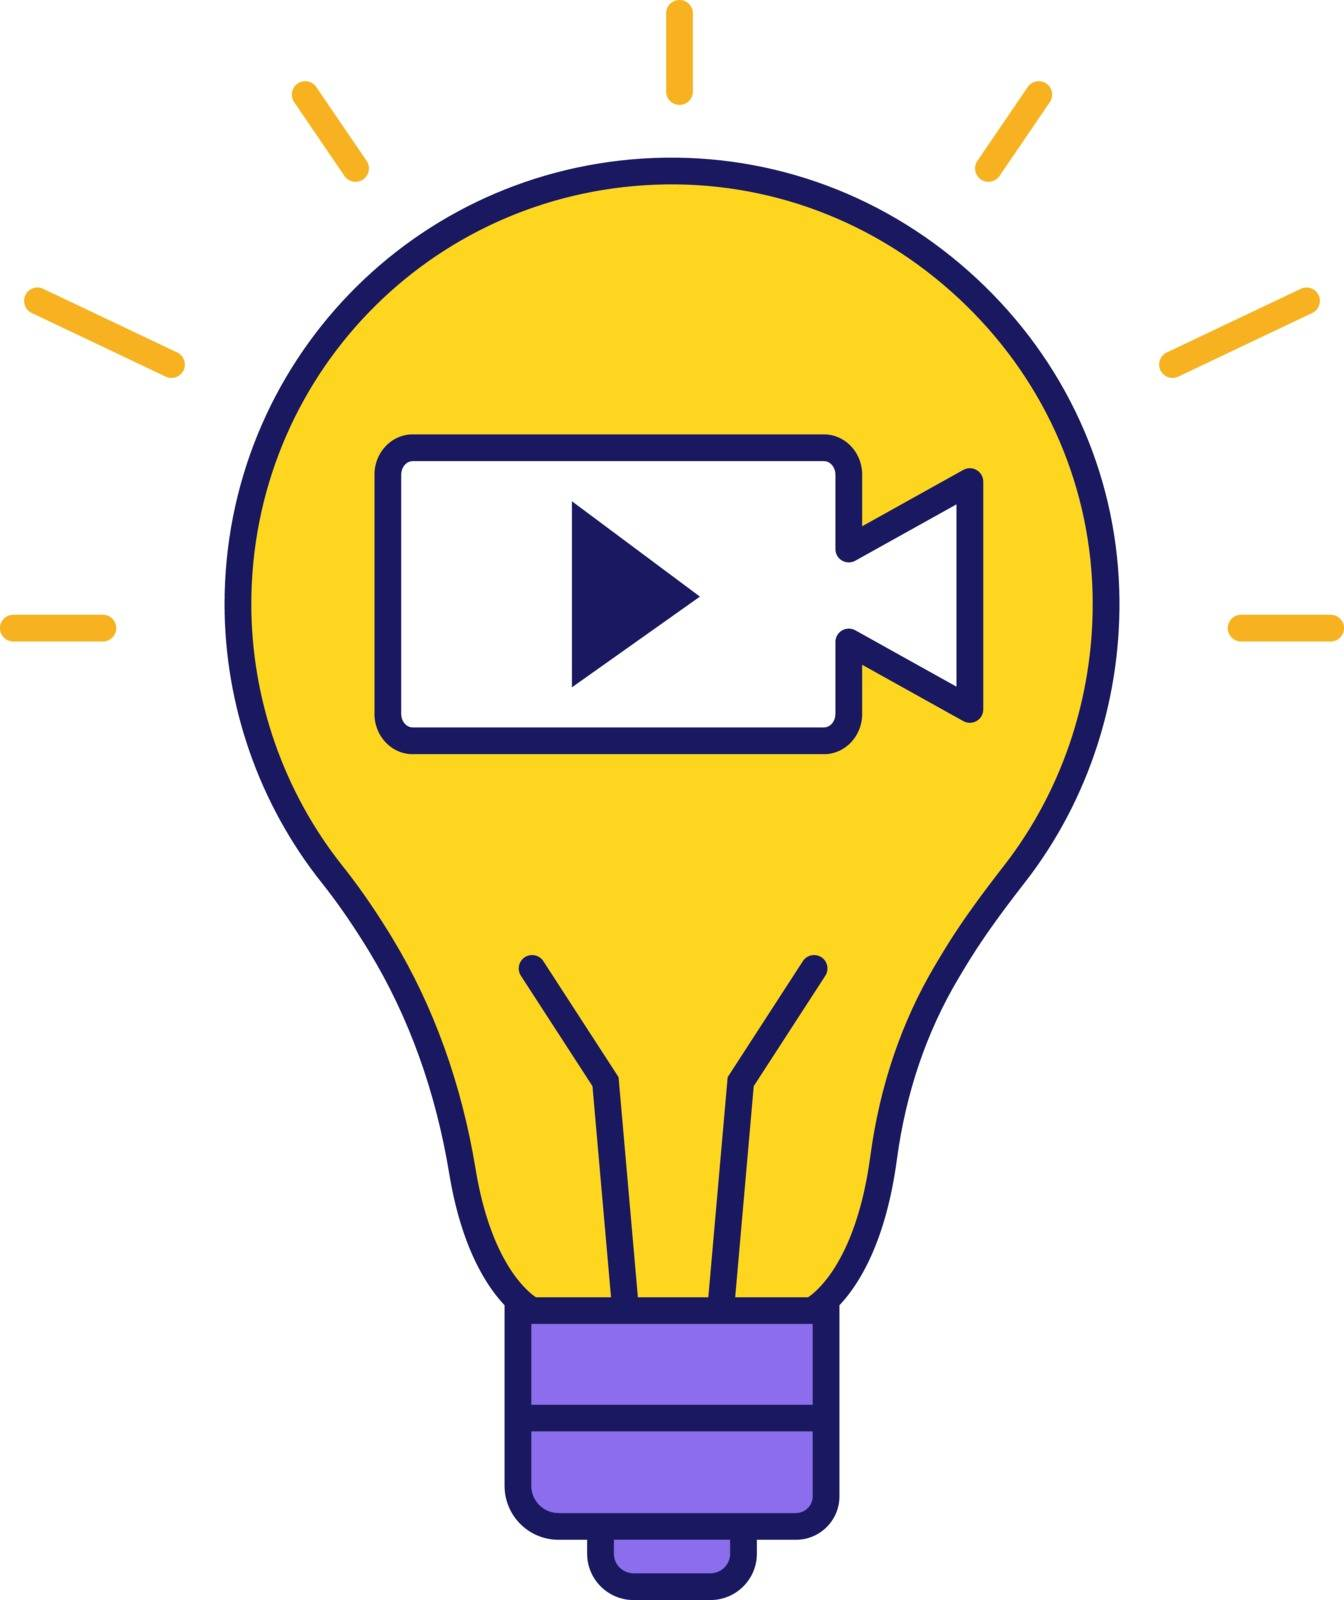 Movie idea color icon. Cinematography. Film industry. Creative idea. Light bulb with movie camera inside. Isolated vector illustration